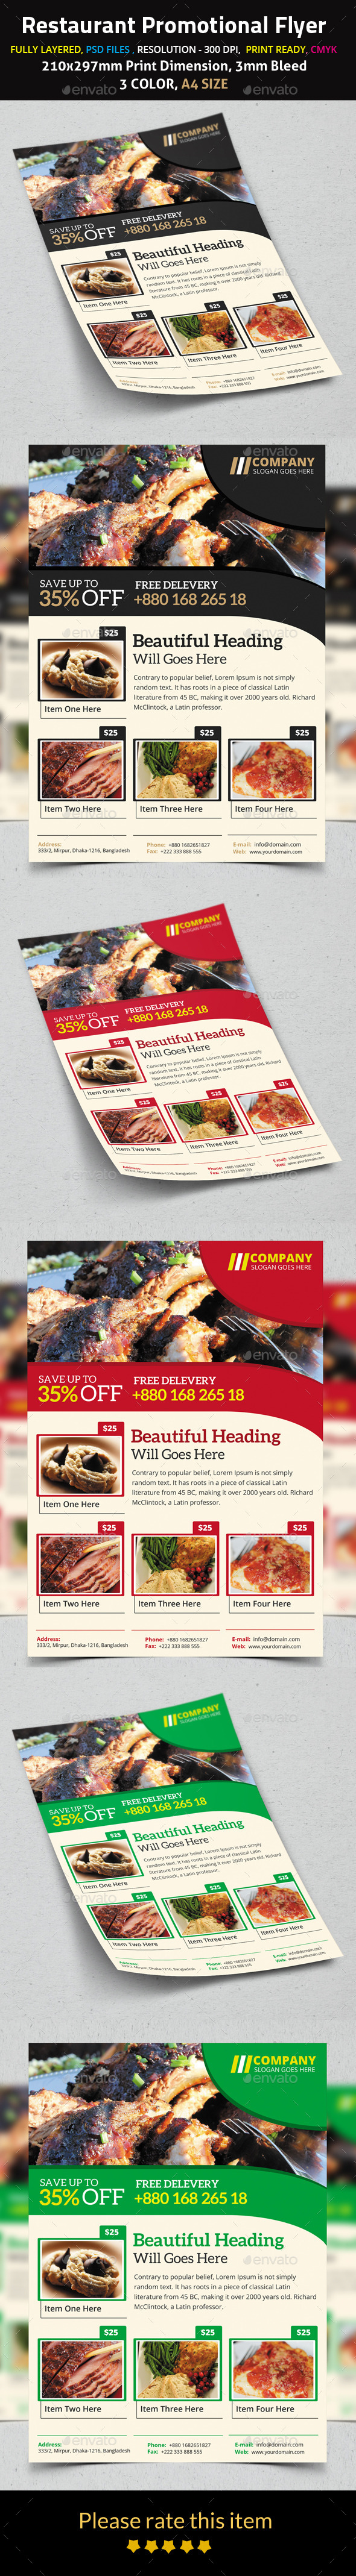 GraphicRiver Restaurant Promotional Flyer 9693721